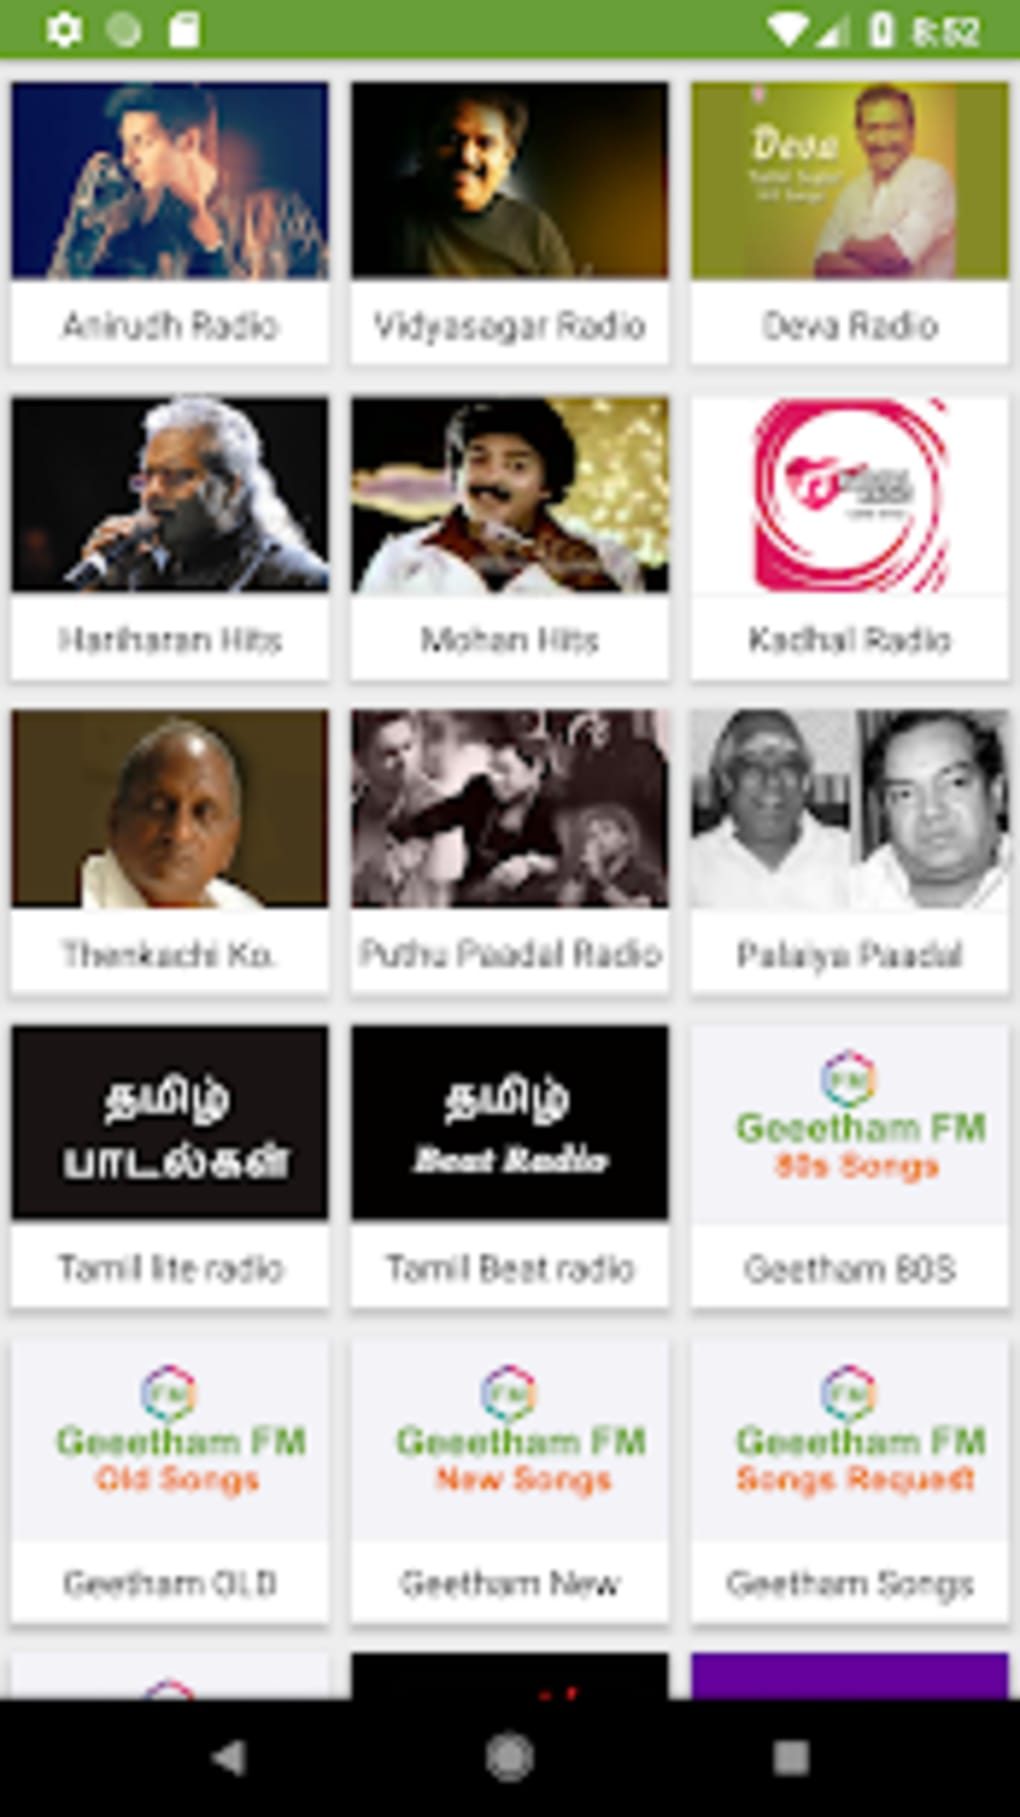 Tamil Fm Radio Hd Online tamil songs for Android - Download